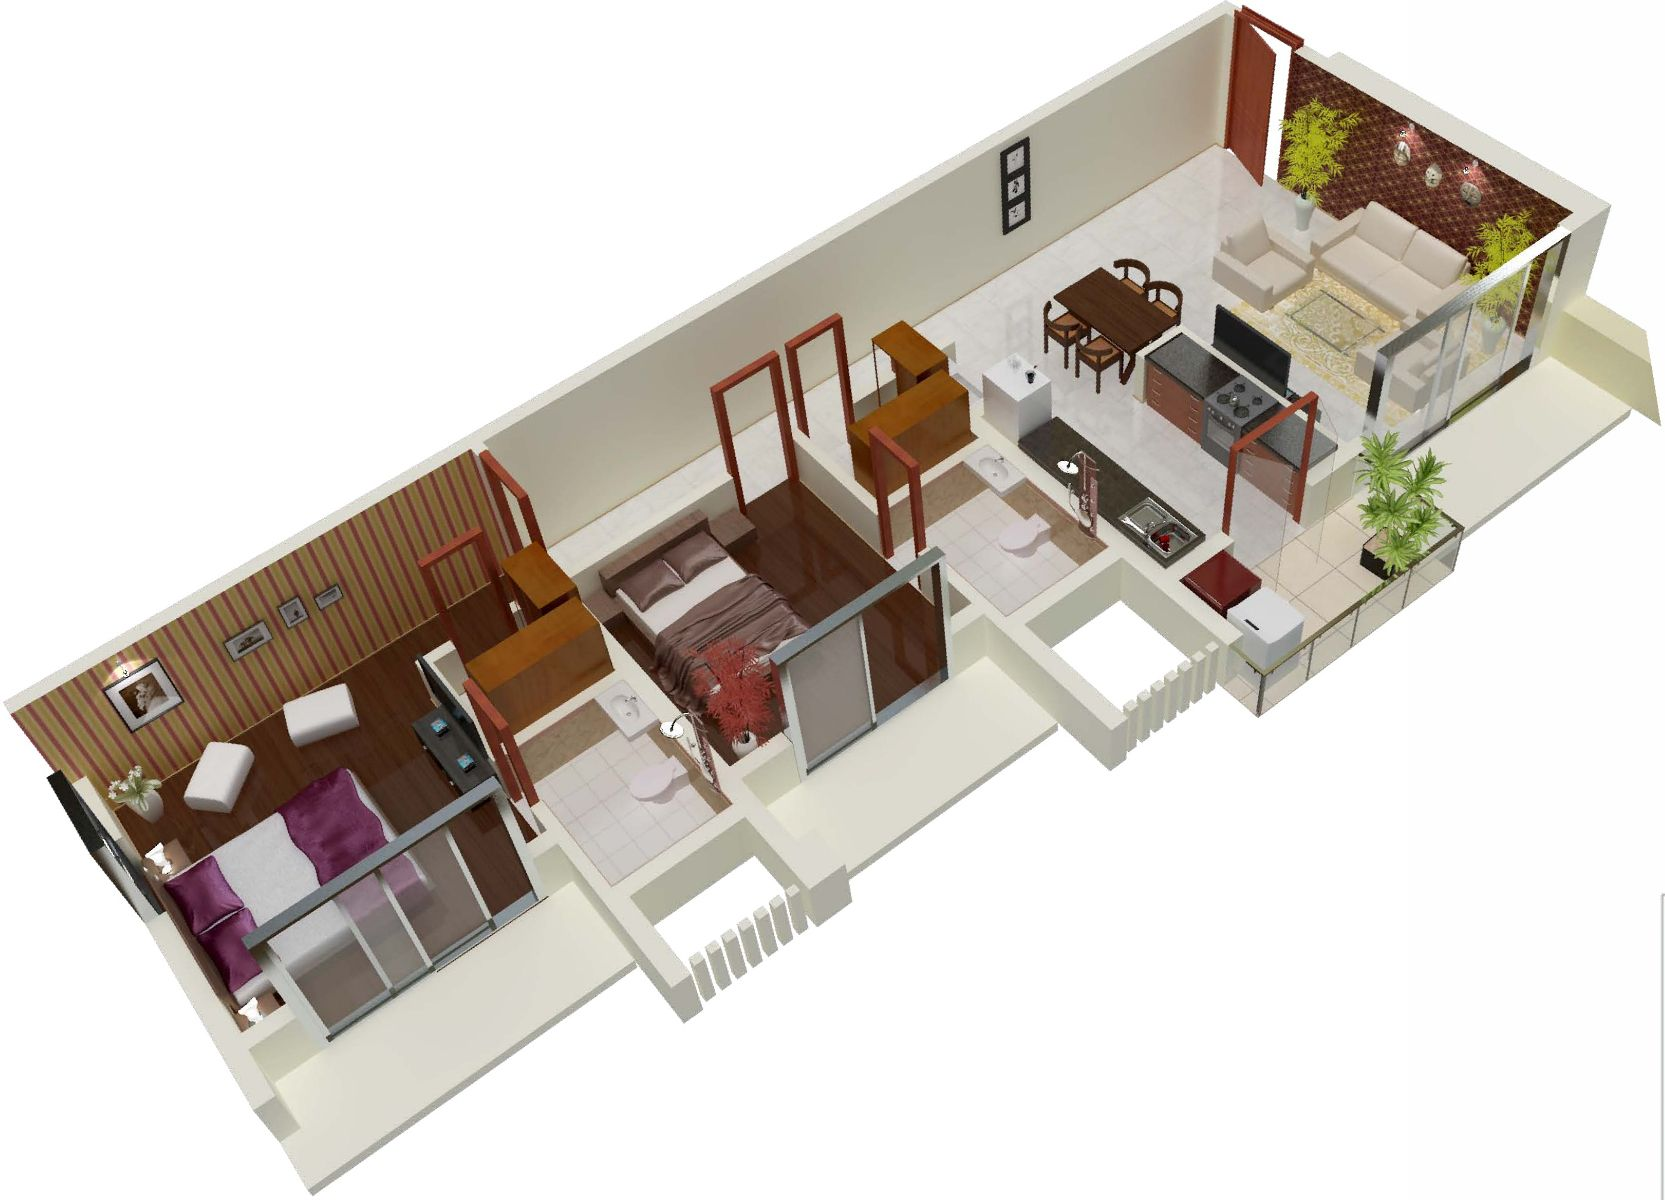 Omkar alta monte floor plan 2bhk 2t 1 200 sq ft 1200 sq for Apartment plans 1200 sq ft